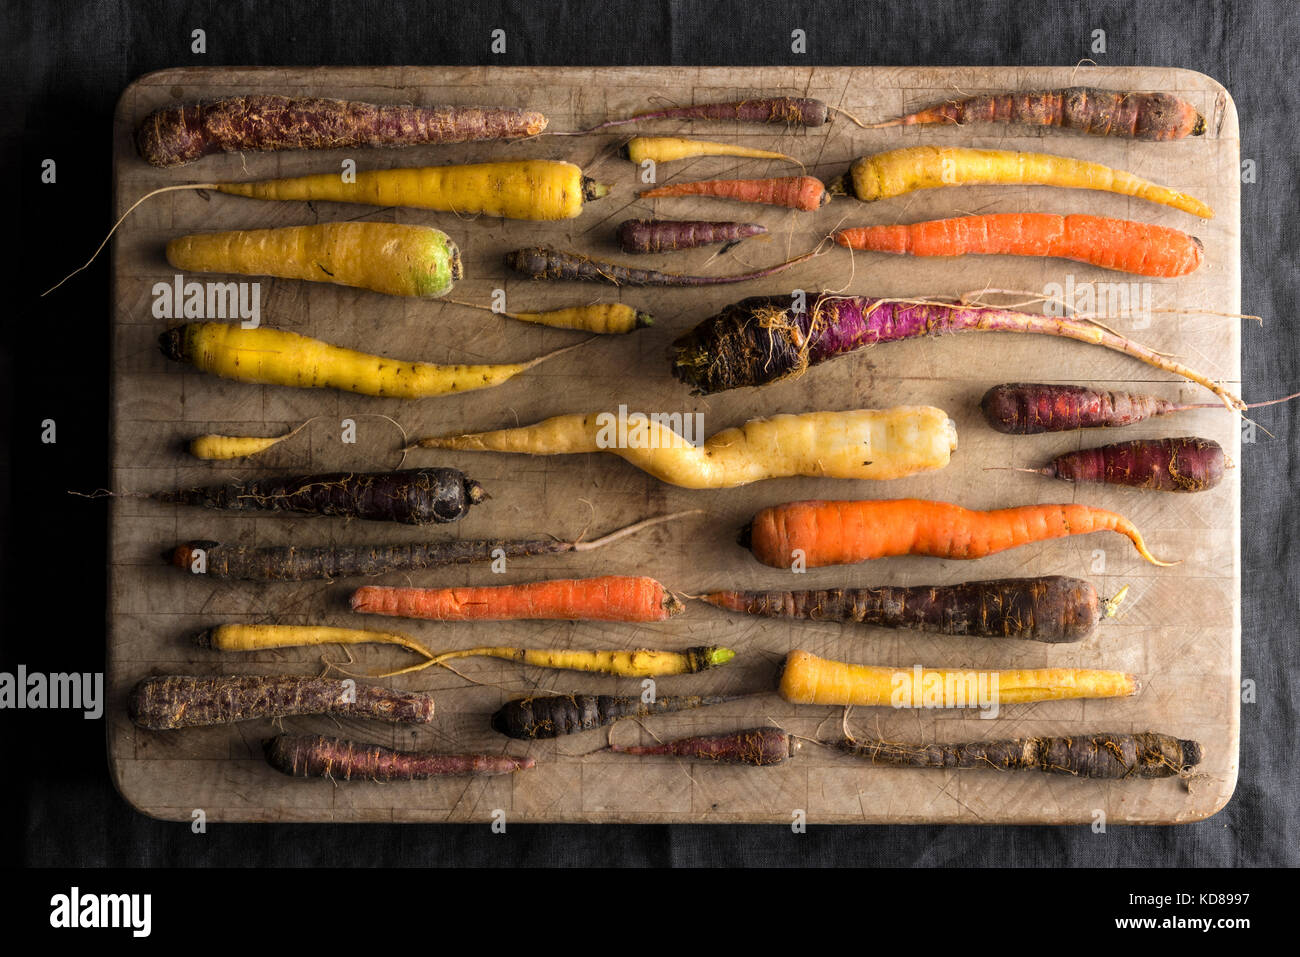 An overhead shot of an array of rainbow carrots in many colors and shapes all with a fresh from the farm, rustic - Stock Image